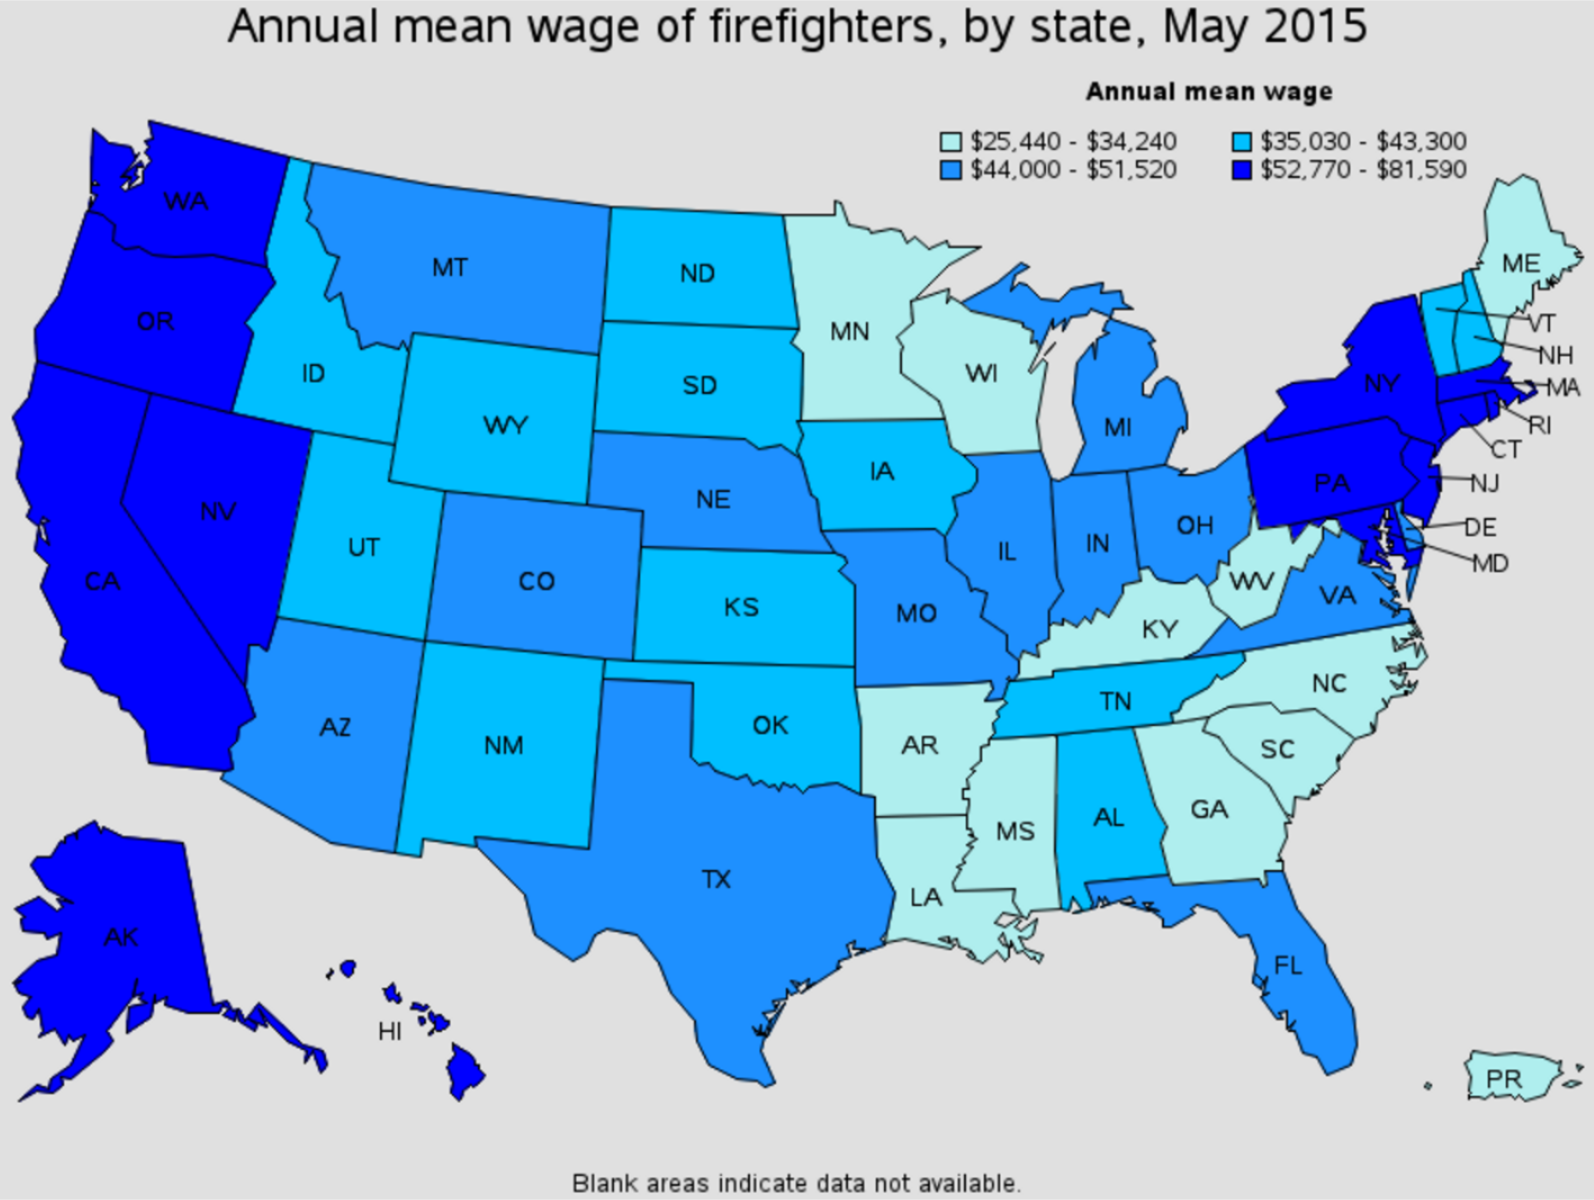 firefighter average salary by state Seaford Delaware